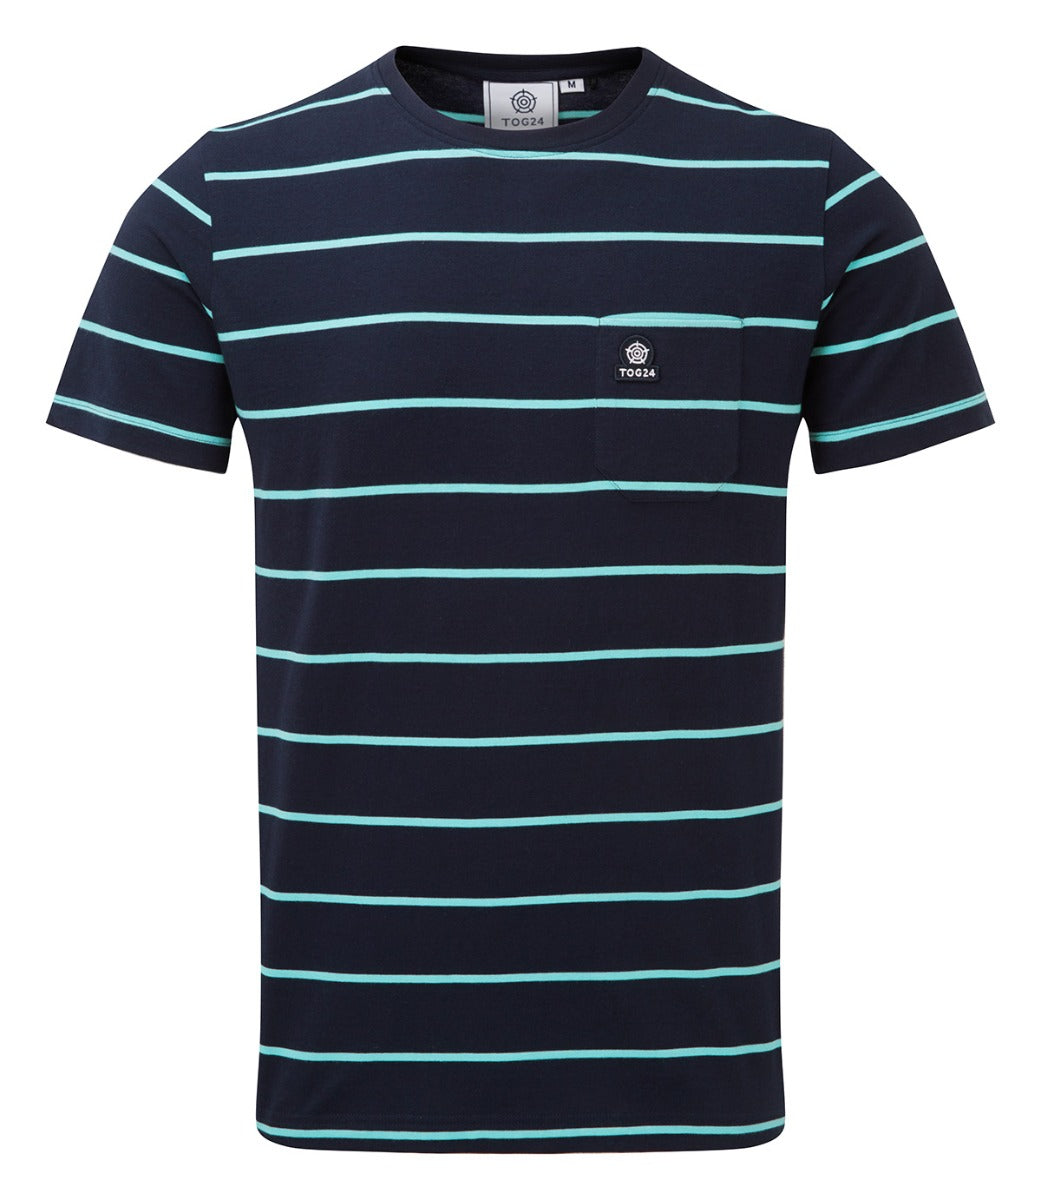 Elliot Stripe Mens T-Shirt - Navy image 4